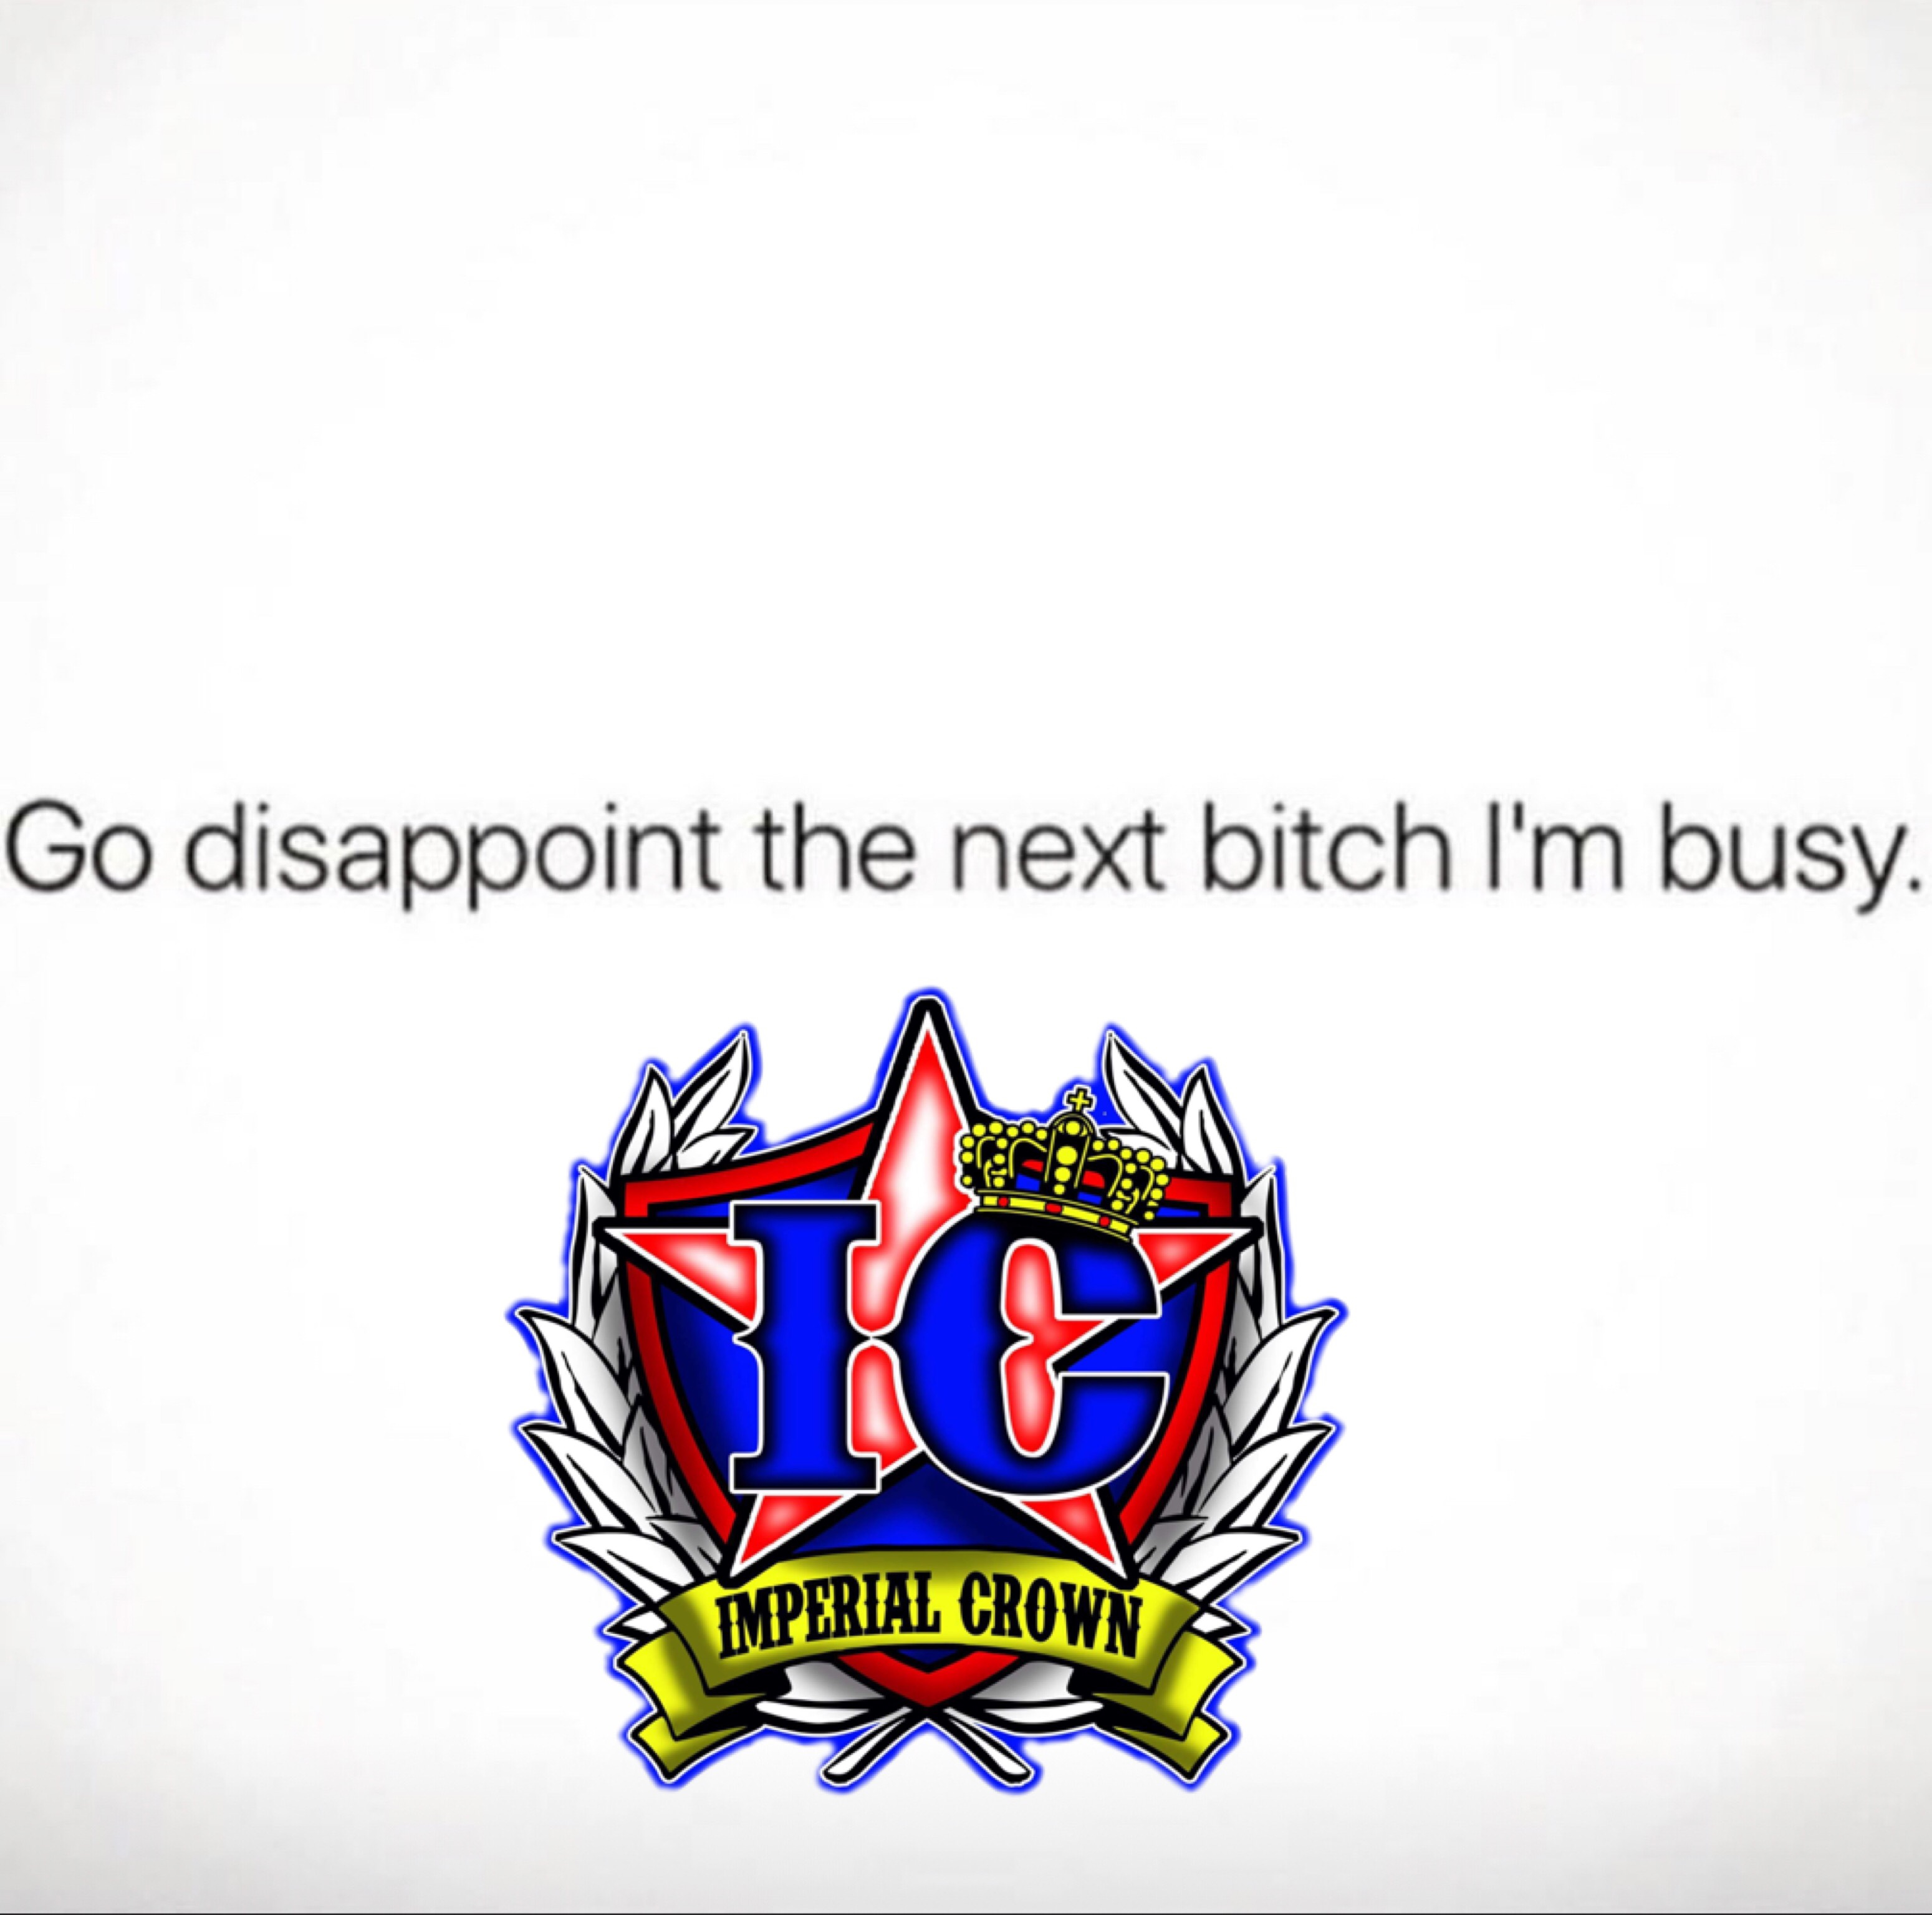 Go disappoint the next bitch im busy